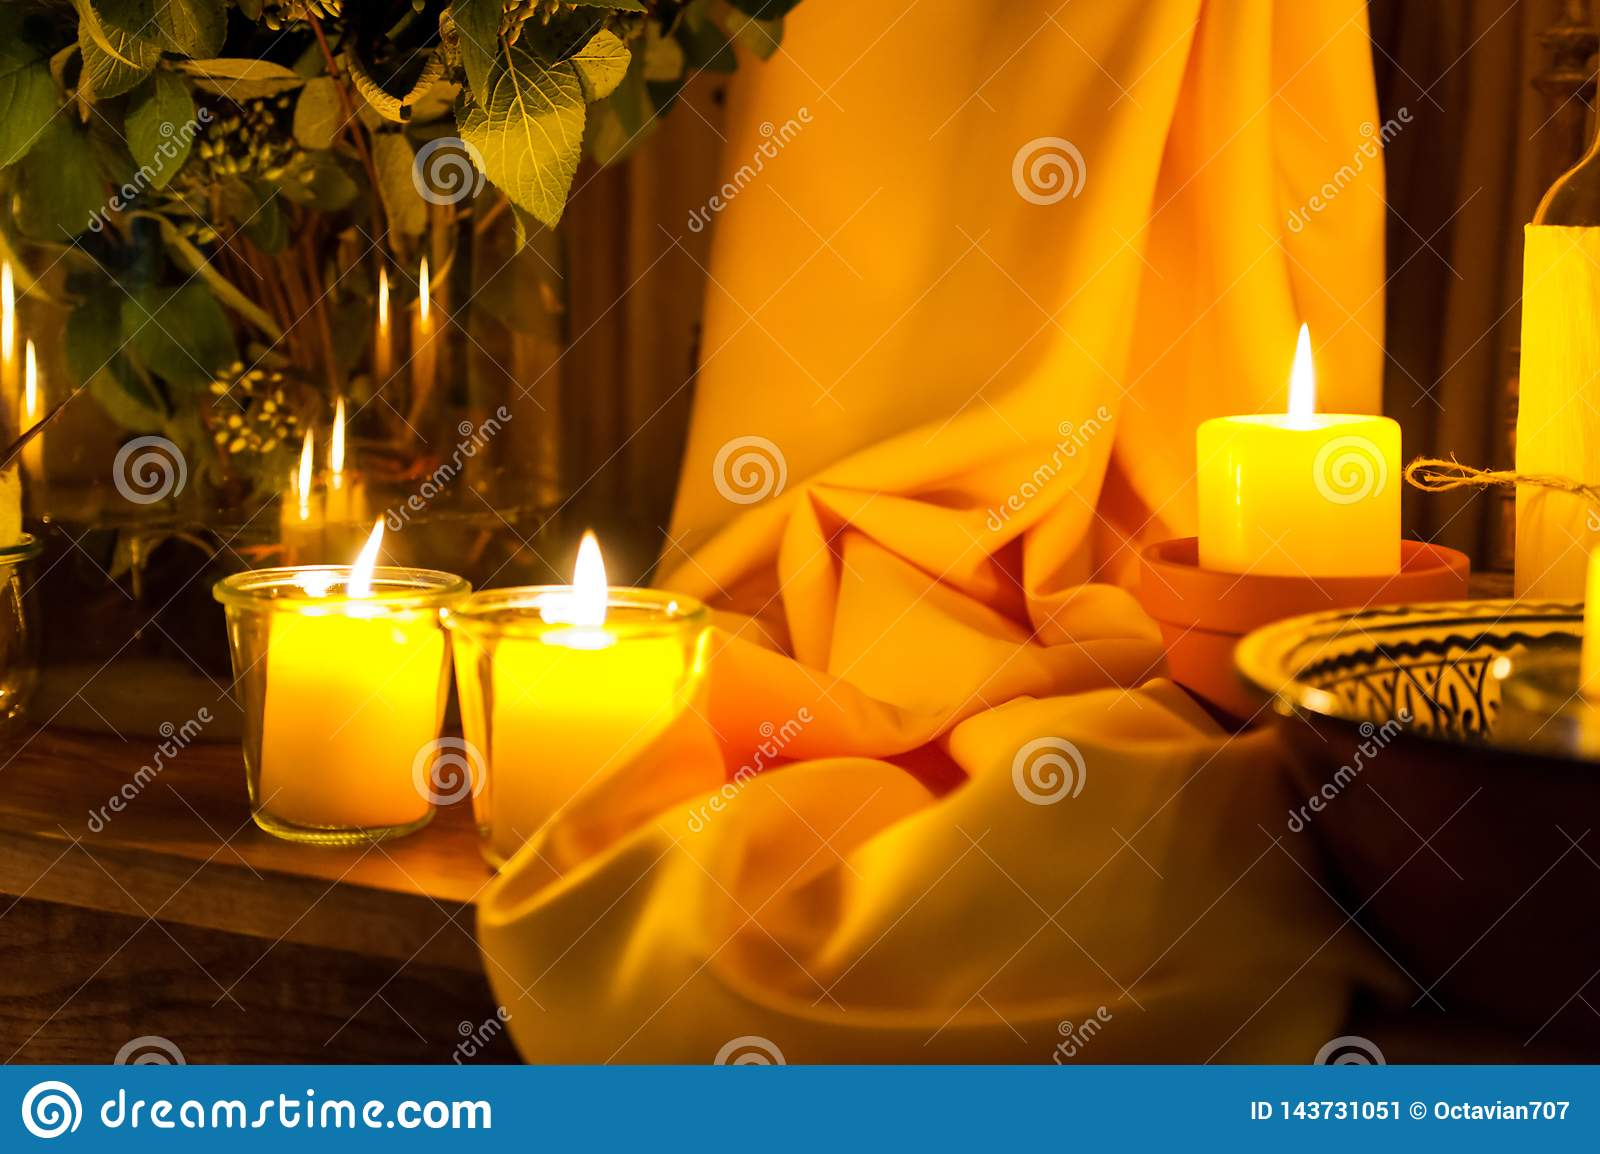 Candles and yellow fabric ornament